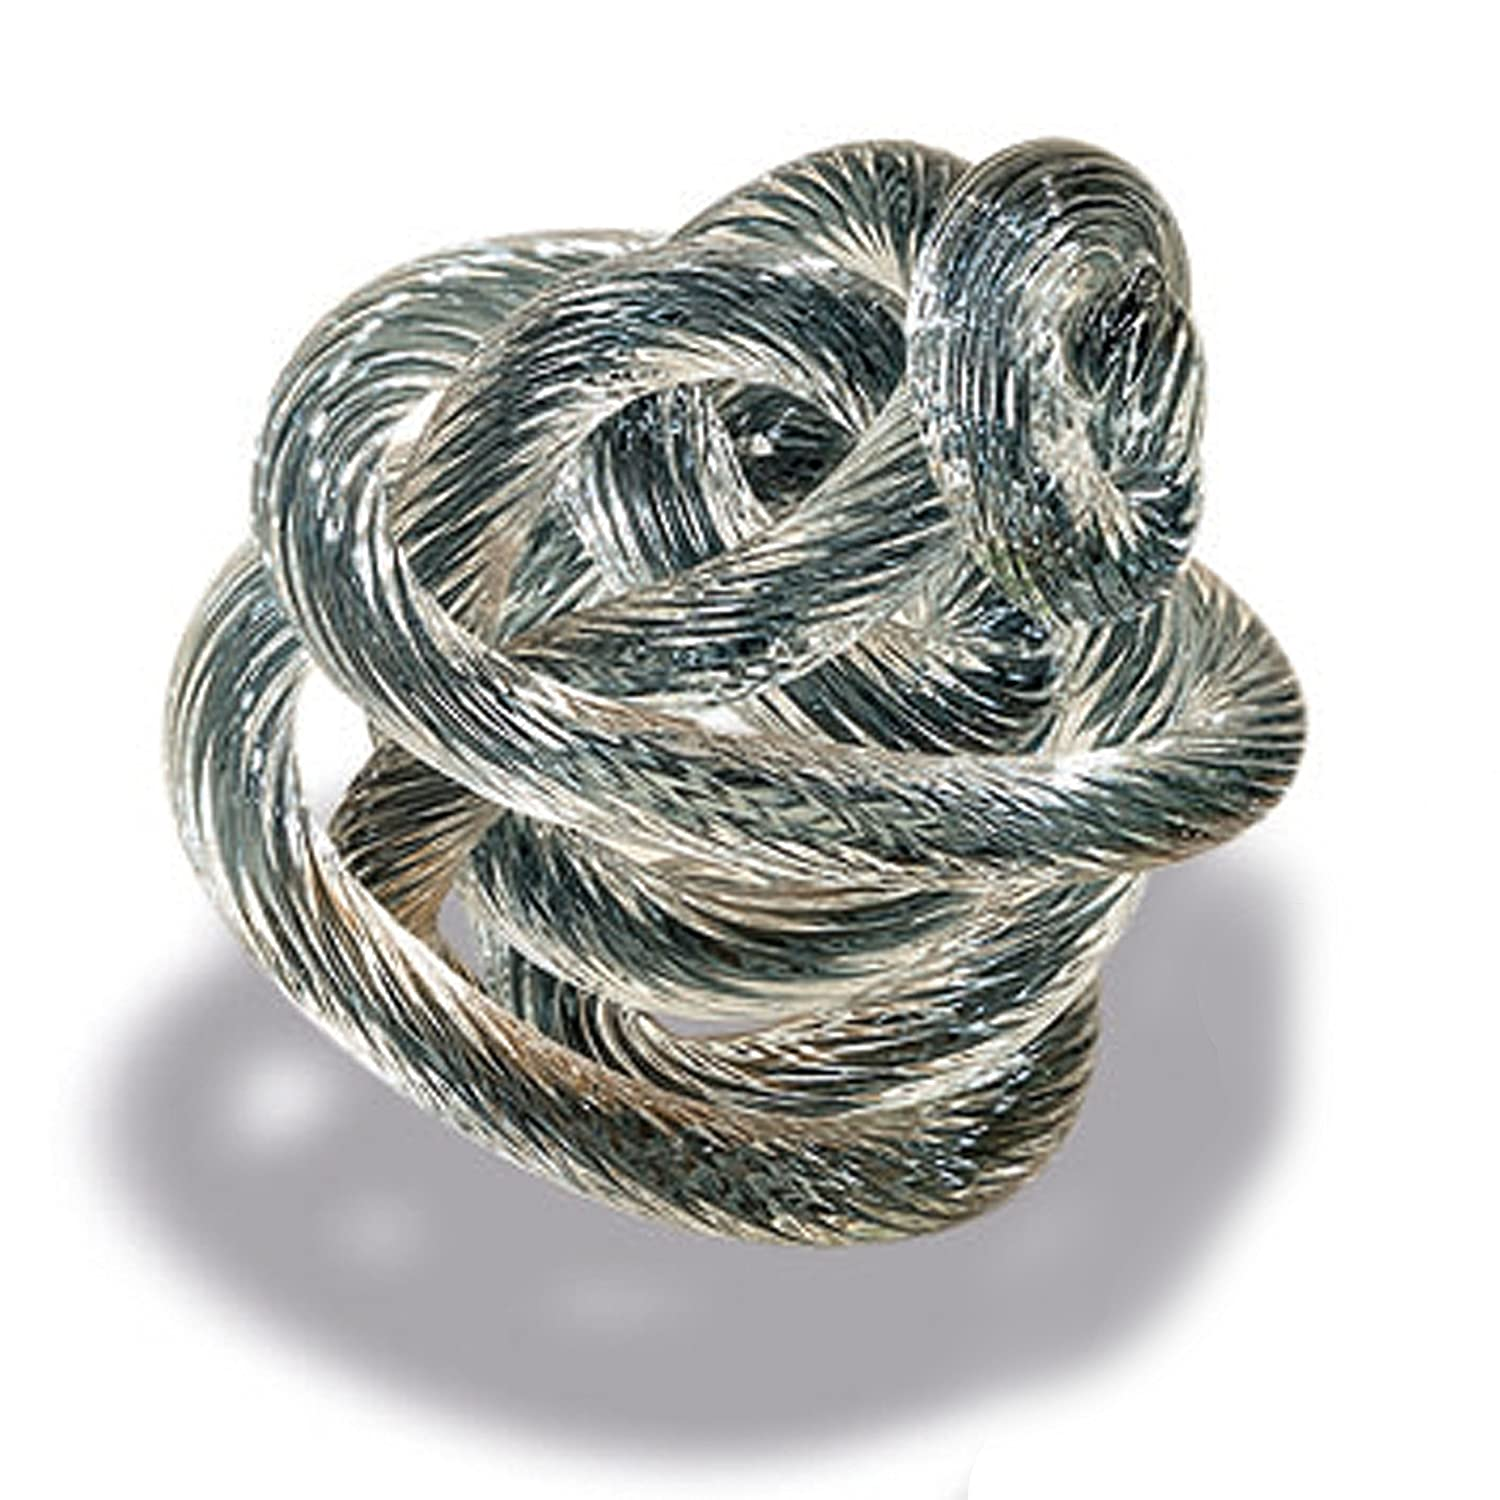 WHW Whole House Worlds Infinity Knot Art Glass 3 1//2 Inches Braided Clear with Silvery Blue Core Hand Blown Artisan Crafted Table Top Sculpture